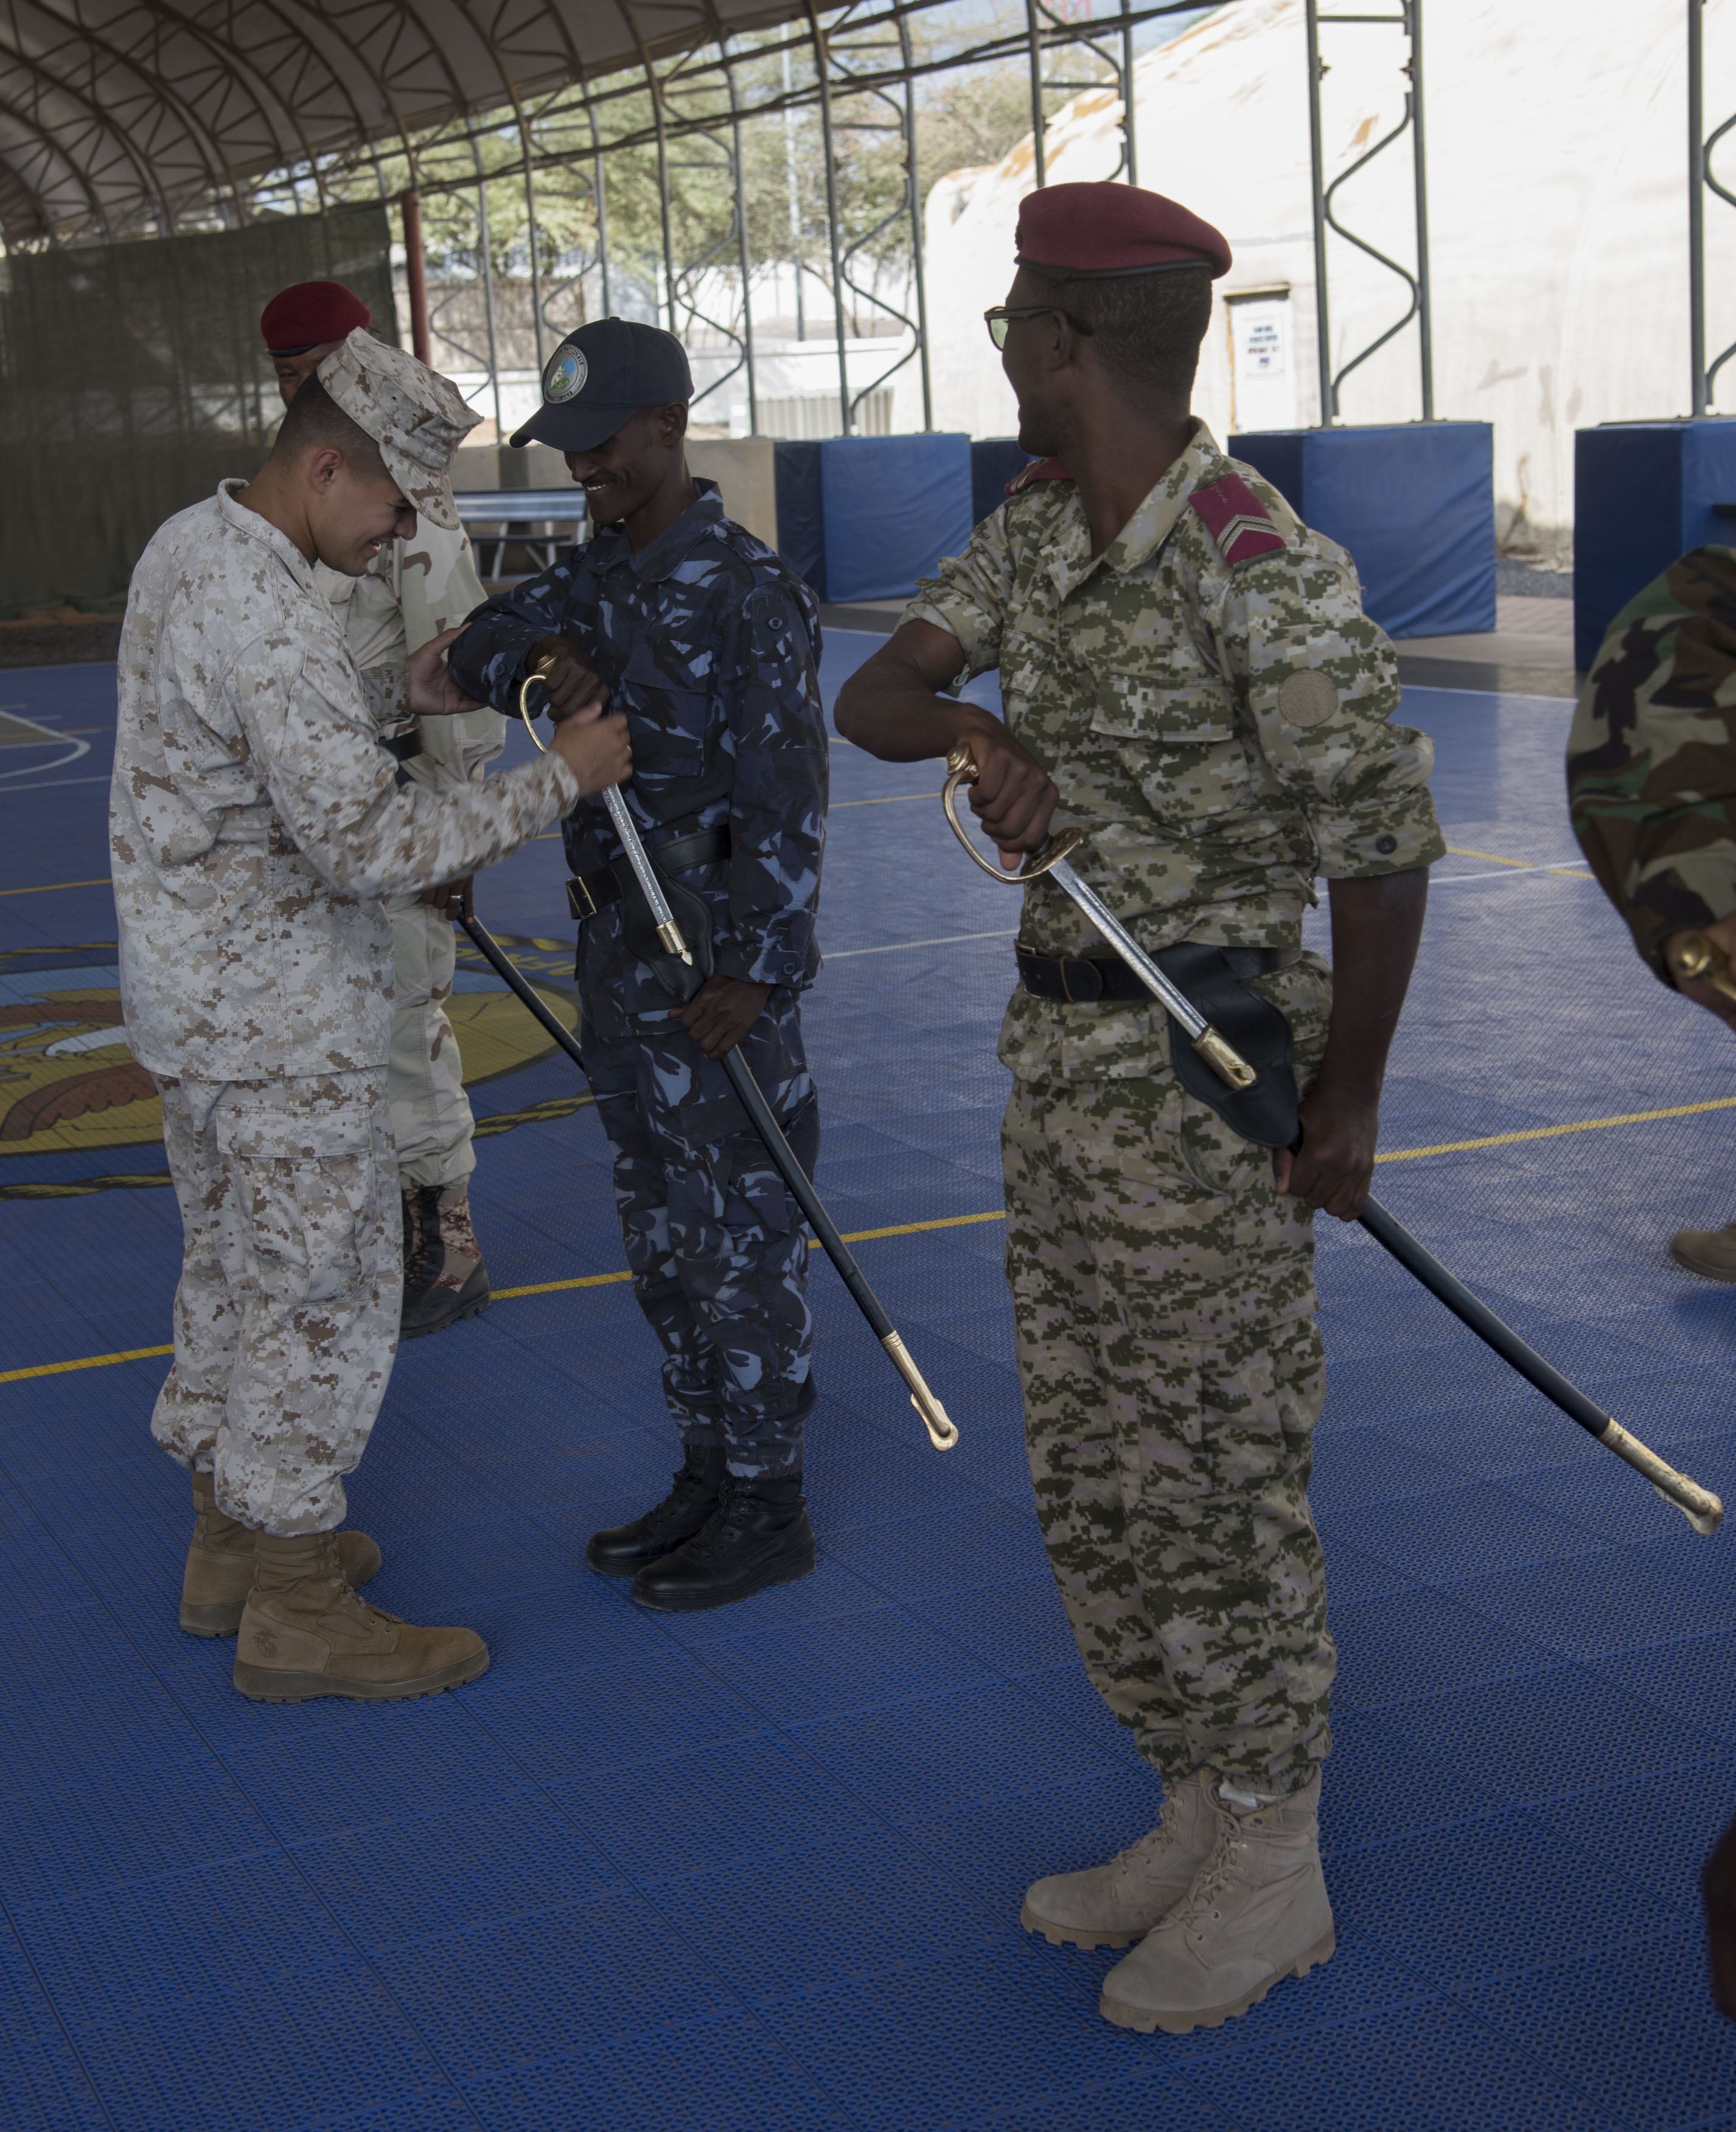 U.S. Marine Corps Sgt. Raymundo Rodriguez shows a Djiboutian military member the proper arm position during sword and guidon training as part of a Joint Corporals Course hosted by Combined Joint Task Force – Horn of Africa at Camp Lemonnier, Jan. 12, 2018. The Joint Corporals Course is designed to provide junior service members with the knowledge and skills necessary to assume leadership roles of greater responsibility as a non-commissioned officer, as well as strengthen bonds between participating militaries. (U.S. Air National Guard photo by Staff Sgt. Allyson L. Manners)